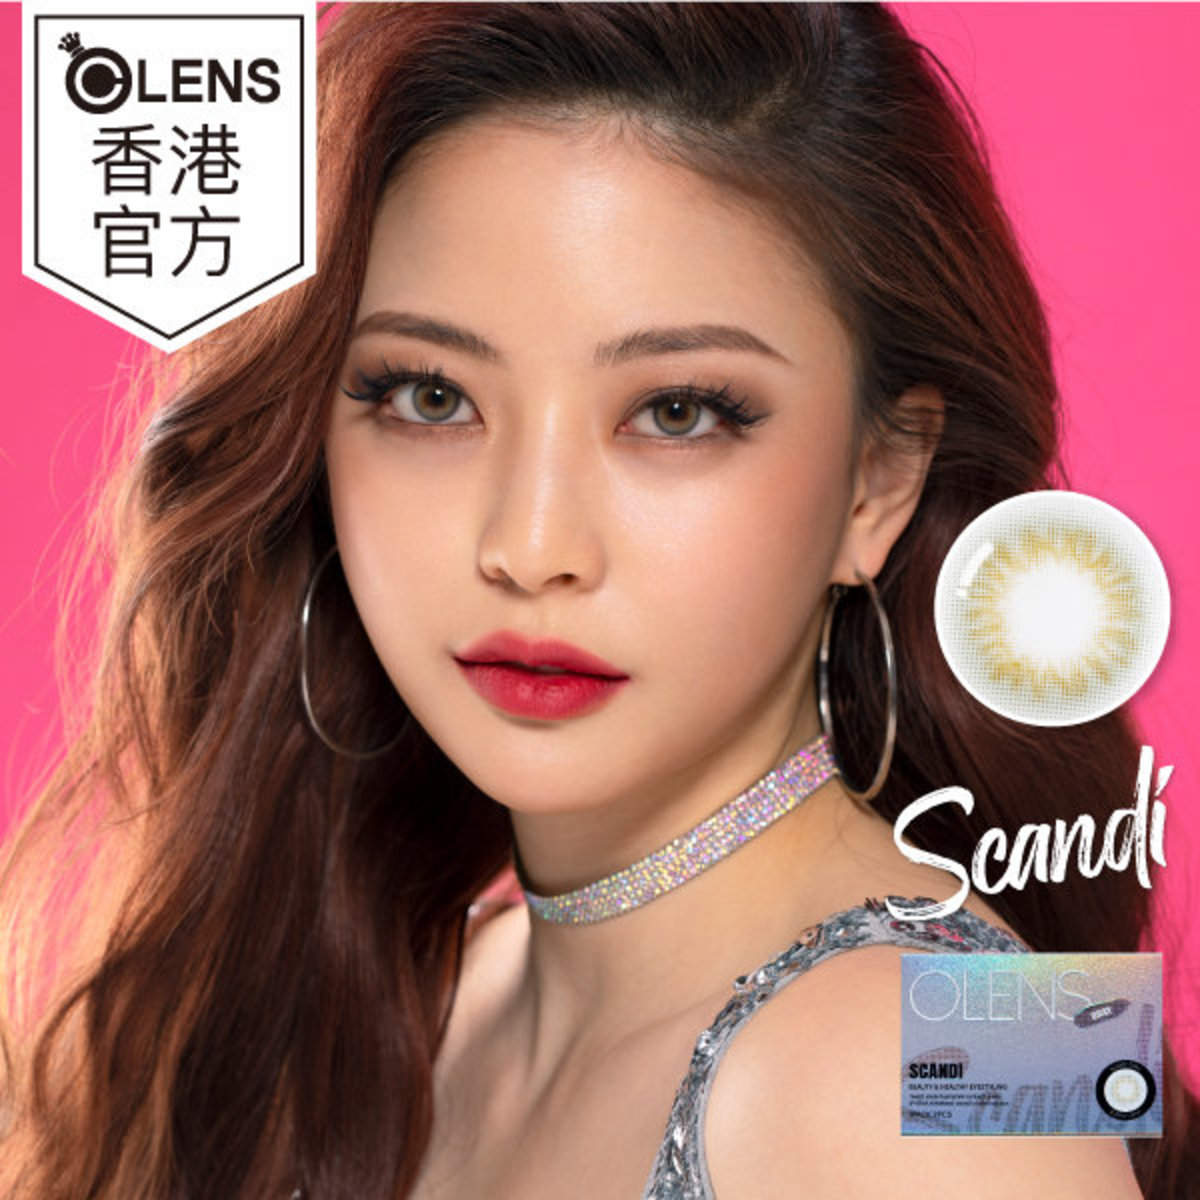 SCANDI GRAY 1 MONTH COLORED CONTACT LENS (2PCS)